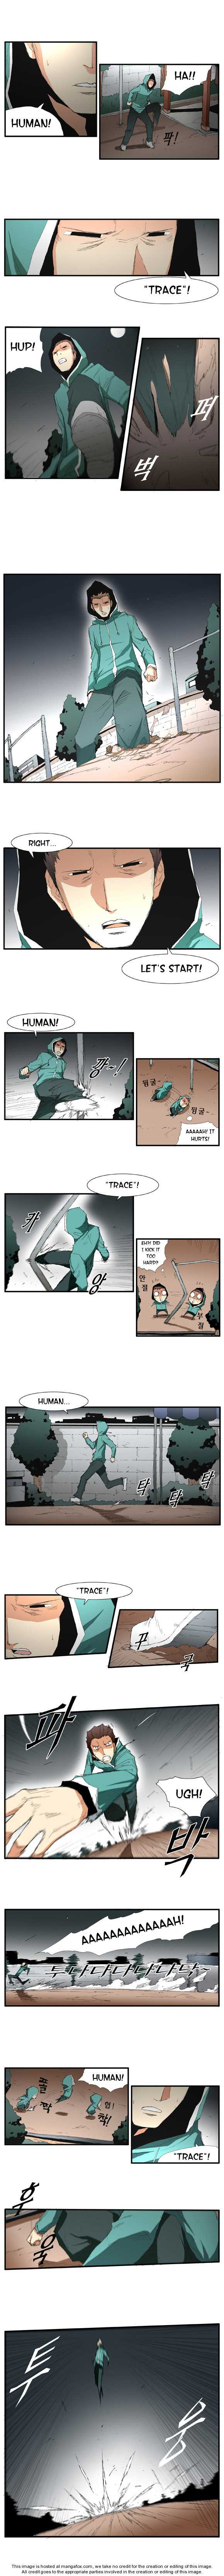 Trace 4 Page 1